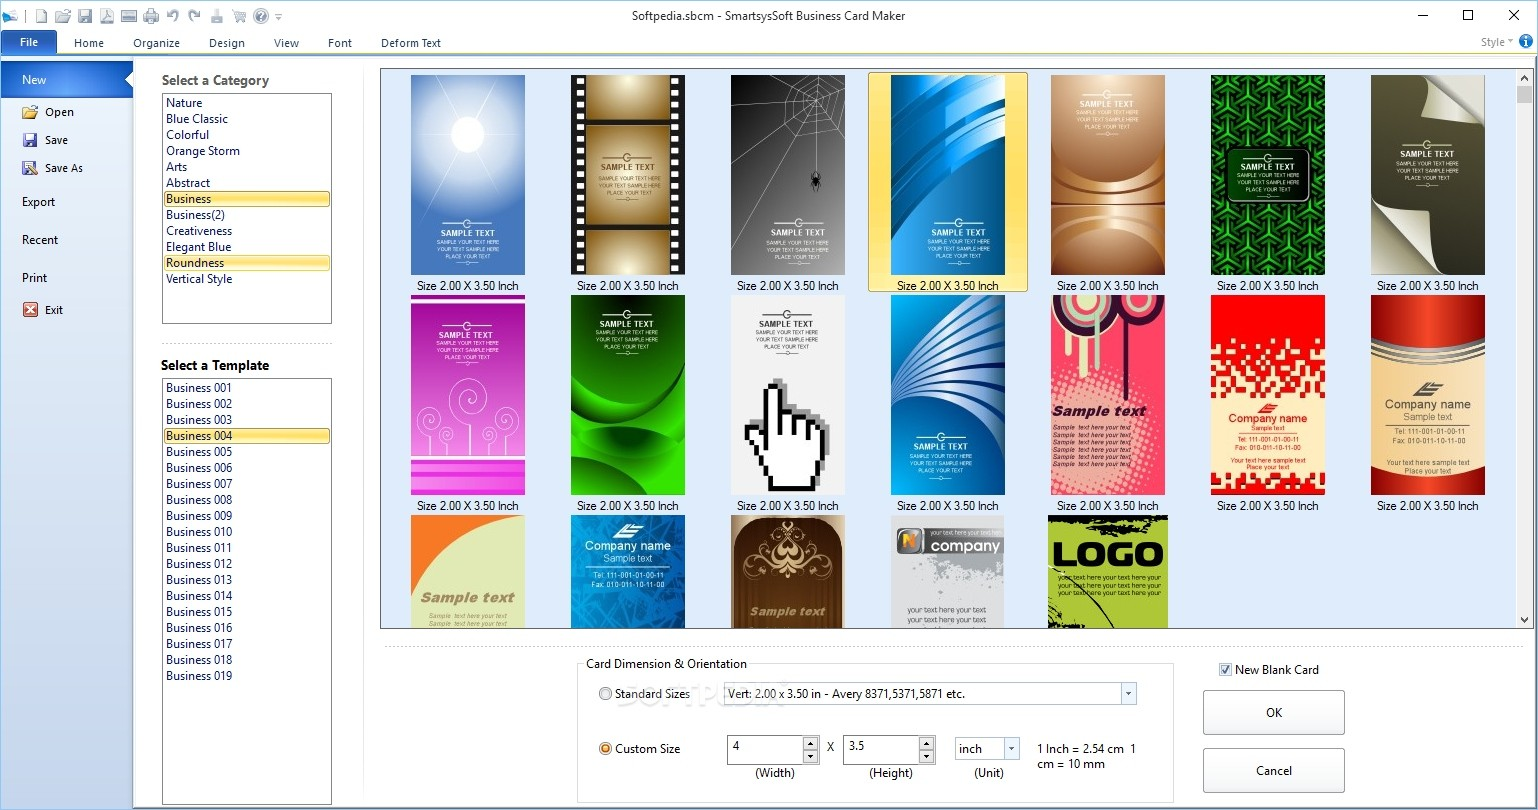 Download smartsyssoft business card maker 325 reheart Gallery